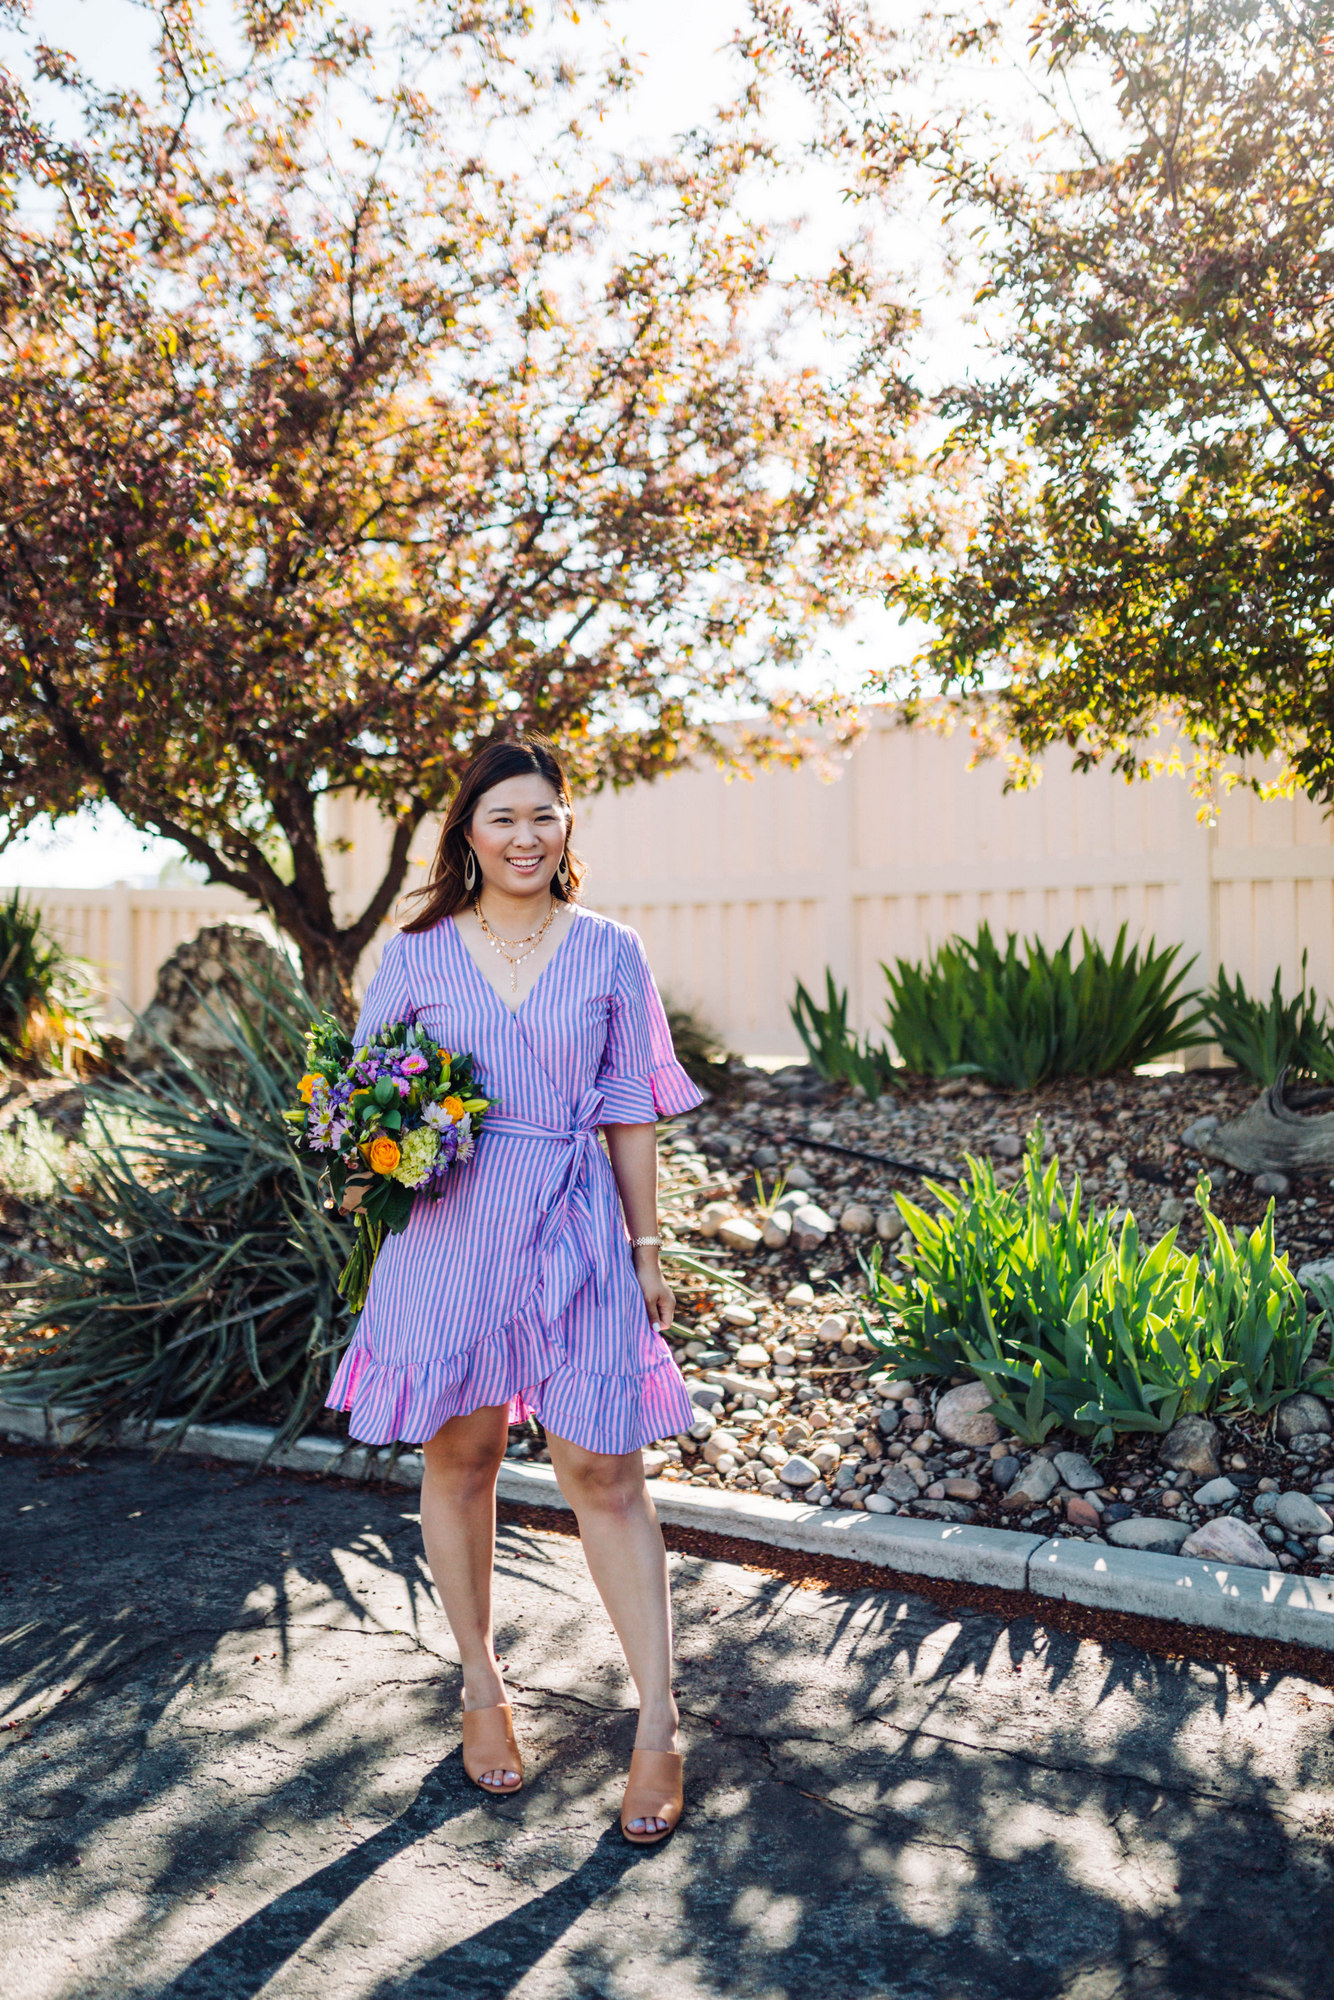 bdaa4e20bcf 3 Dress Styles You Need In Your Closet This Summer